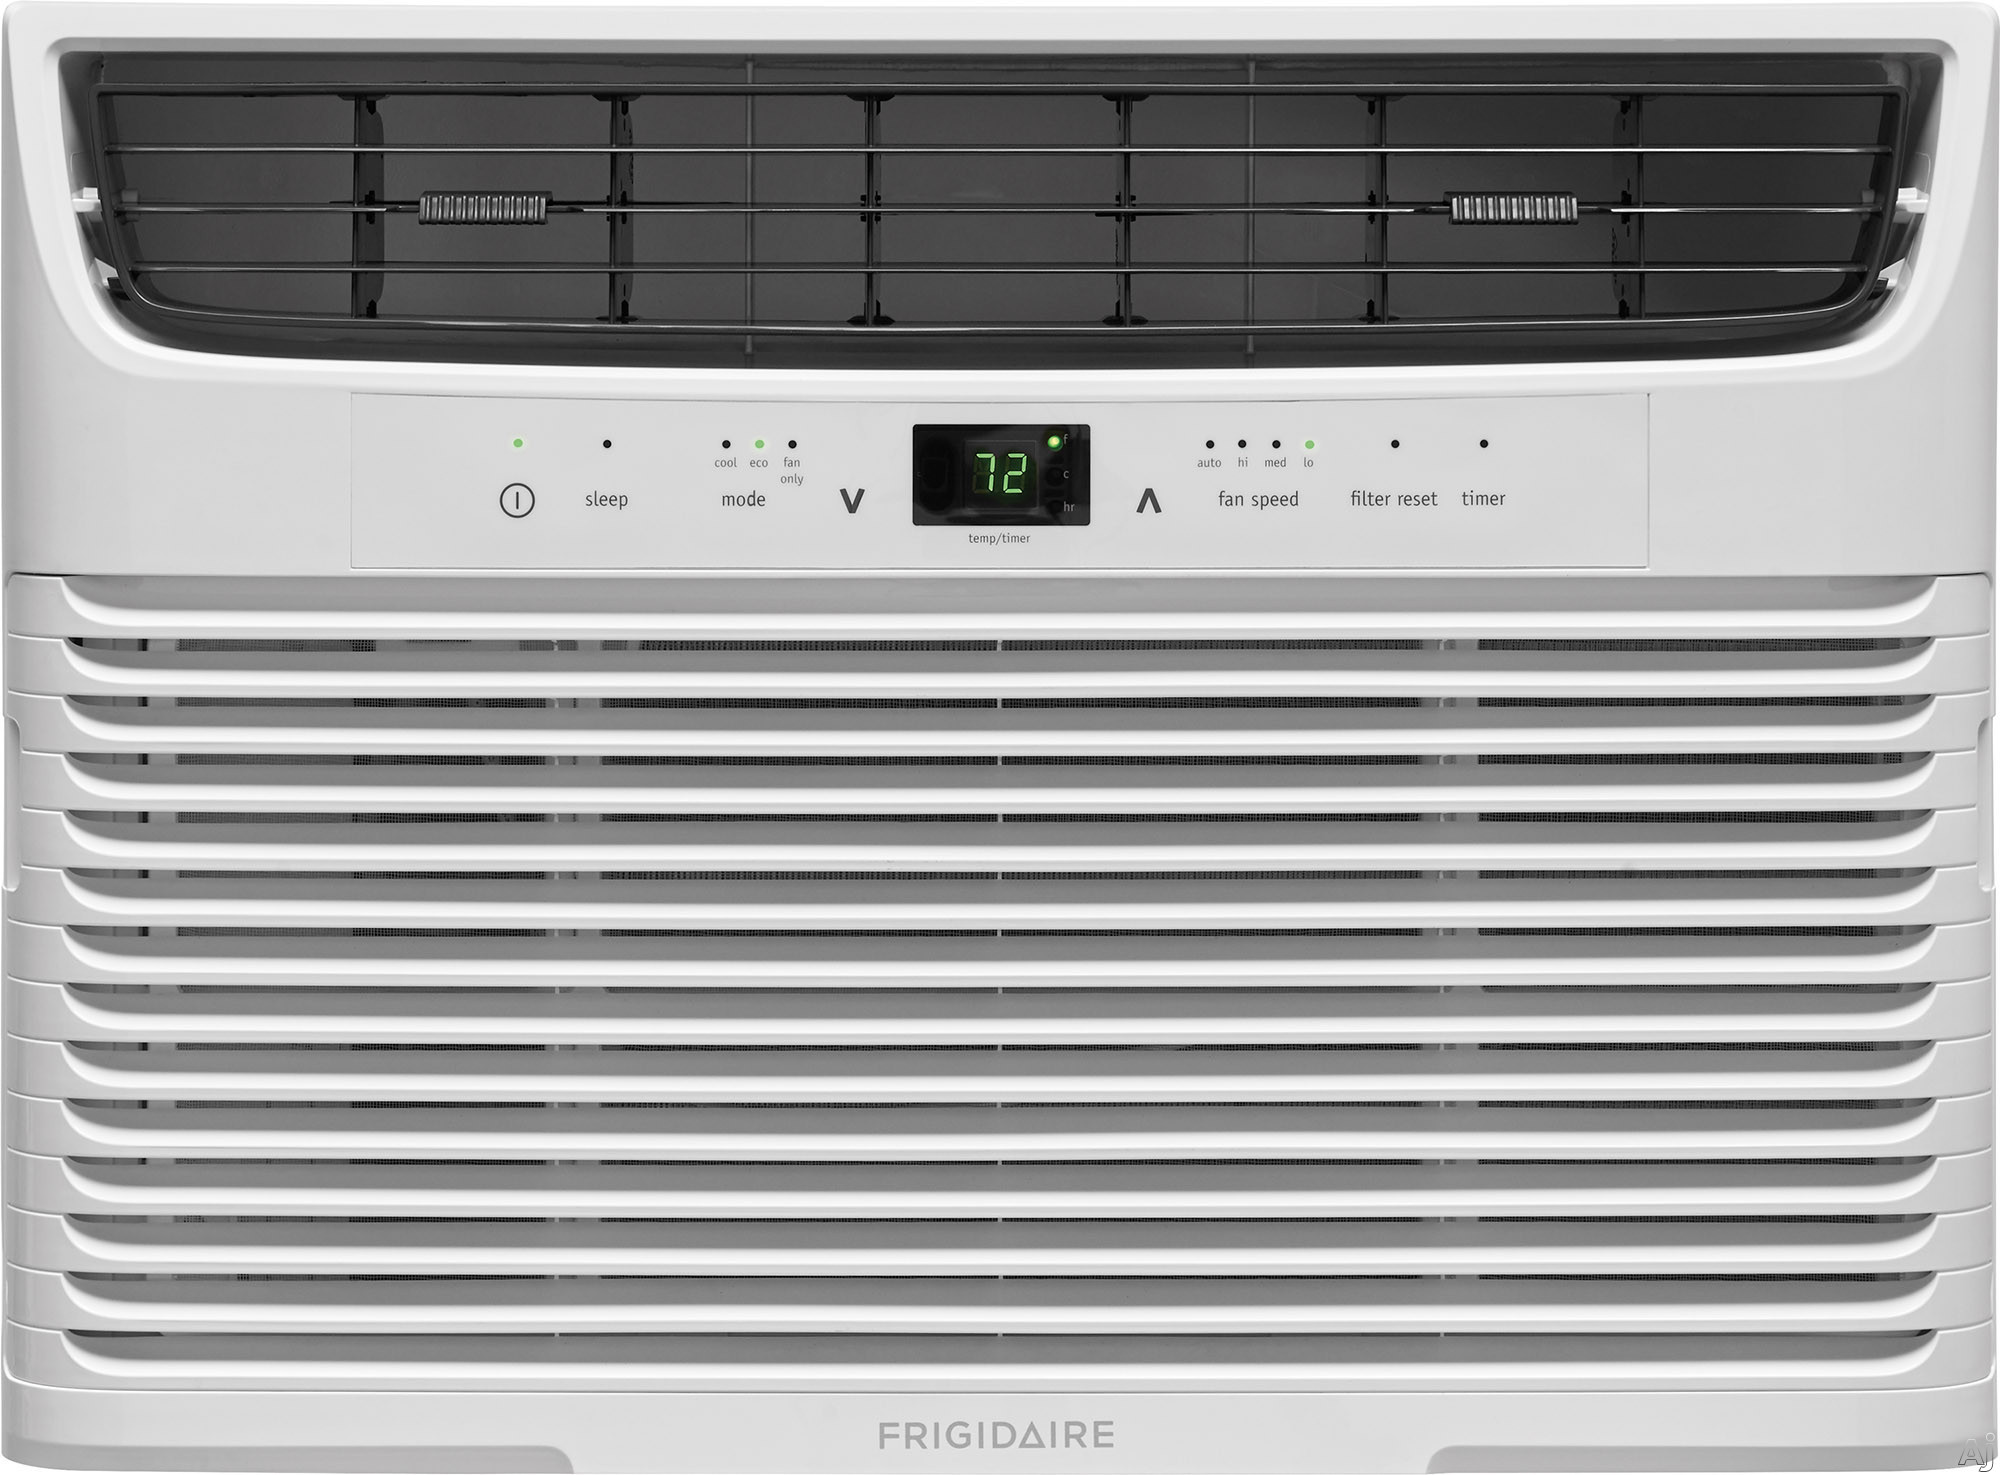 Frigidaire FFRA1222U1 12,000 BTU Room Air Conditioner with Effortless™ Temperature Control, Programmable 24-Hour Timer, Effortless™ Clean Filter, Effortless™ Restart, SpaceWise® A